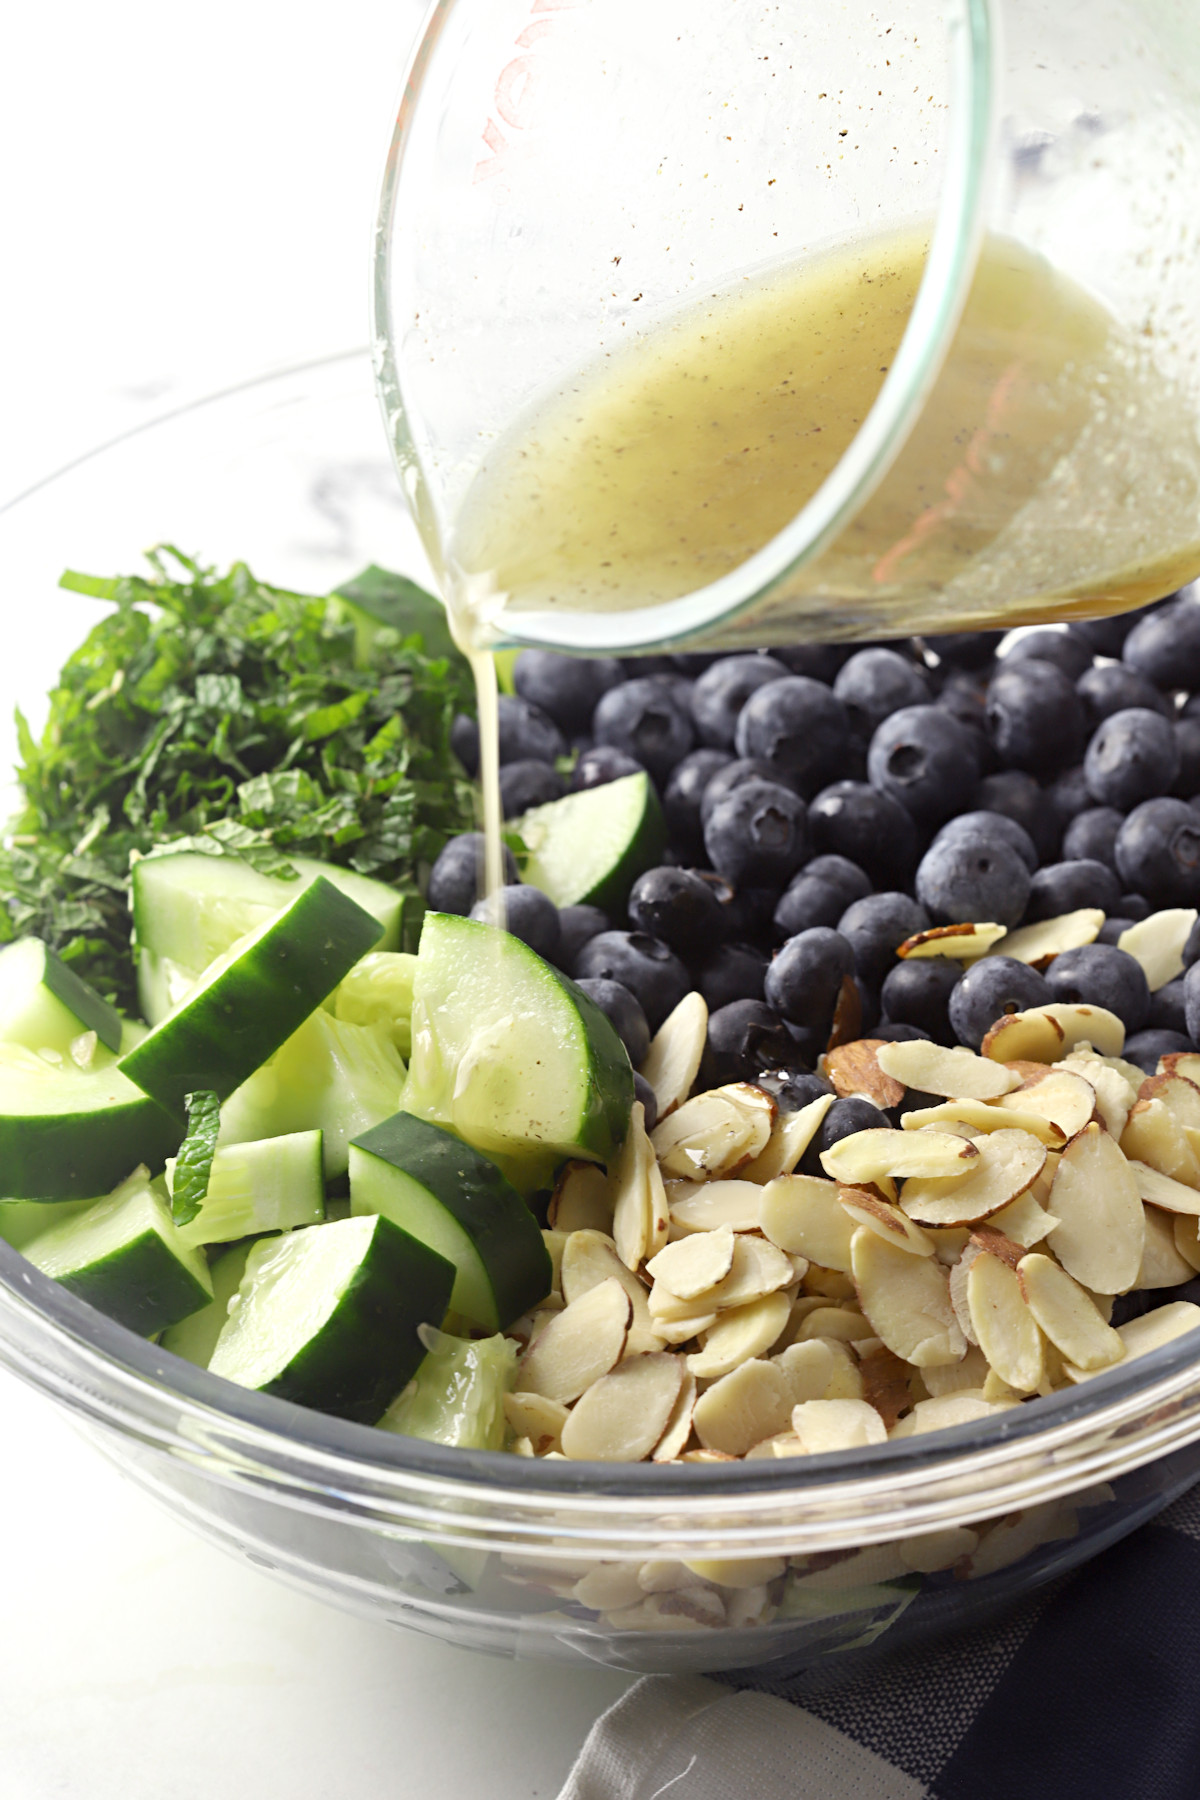 Pouring salad dressing over salad ingredients in a bowl.